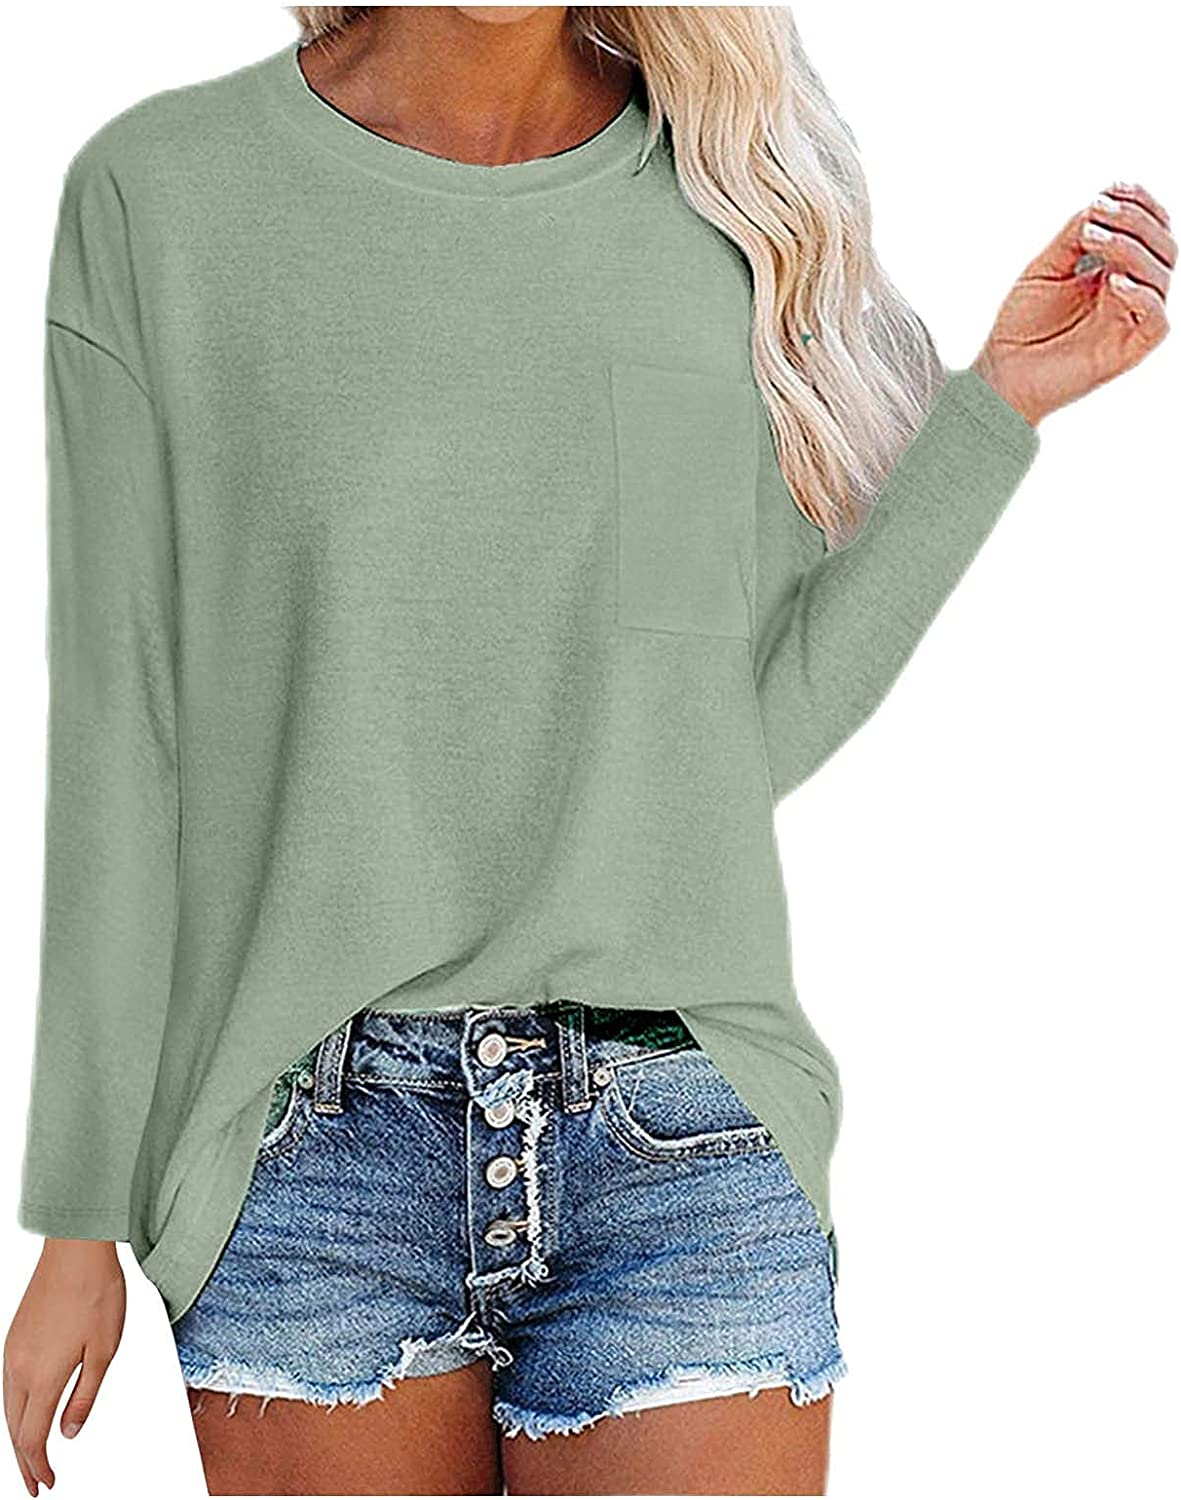 Long Sleeve Tshirts for Women Pure Color Casual Loose Top Crew Neck Pockets Front Pullover Blouse Tunic